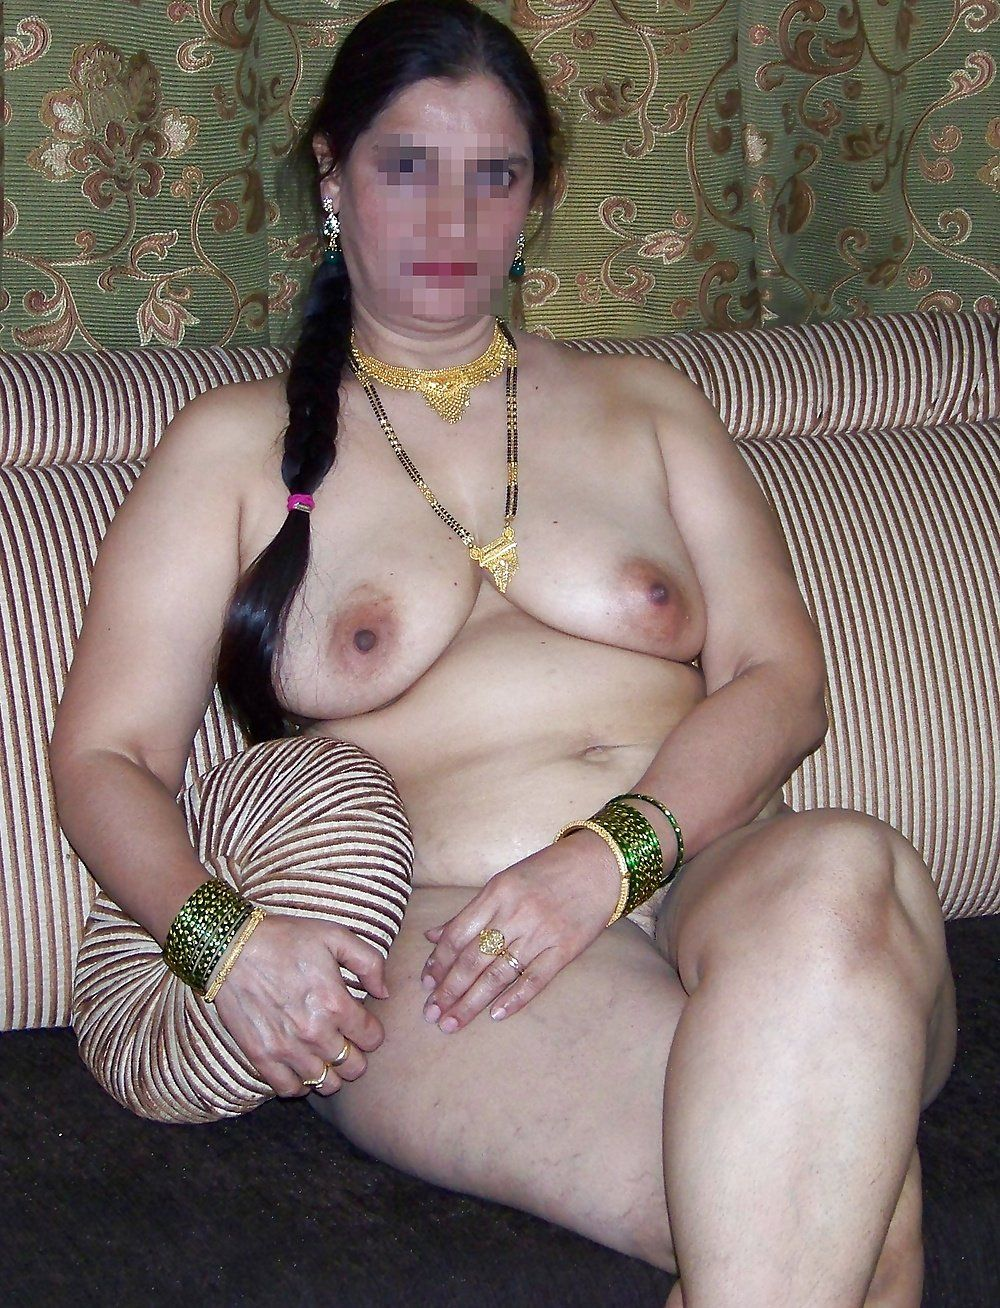 Amber Carlisle Porn nude sex of indian mothers - naked images. comments: 1